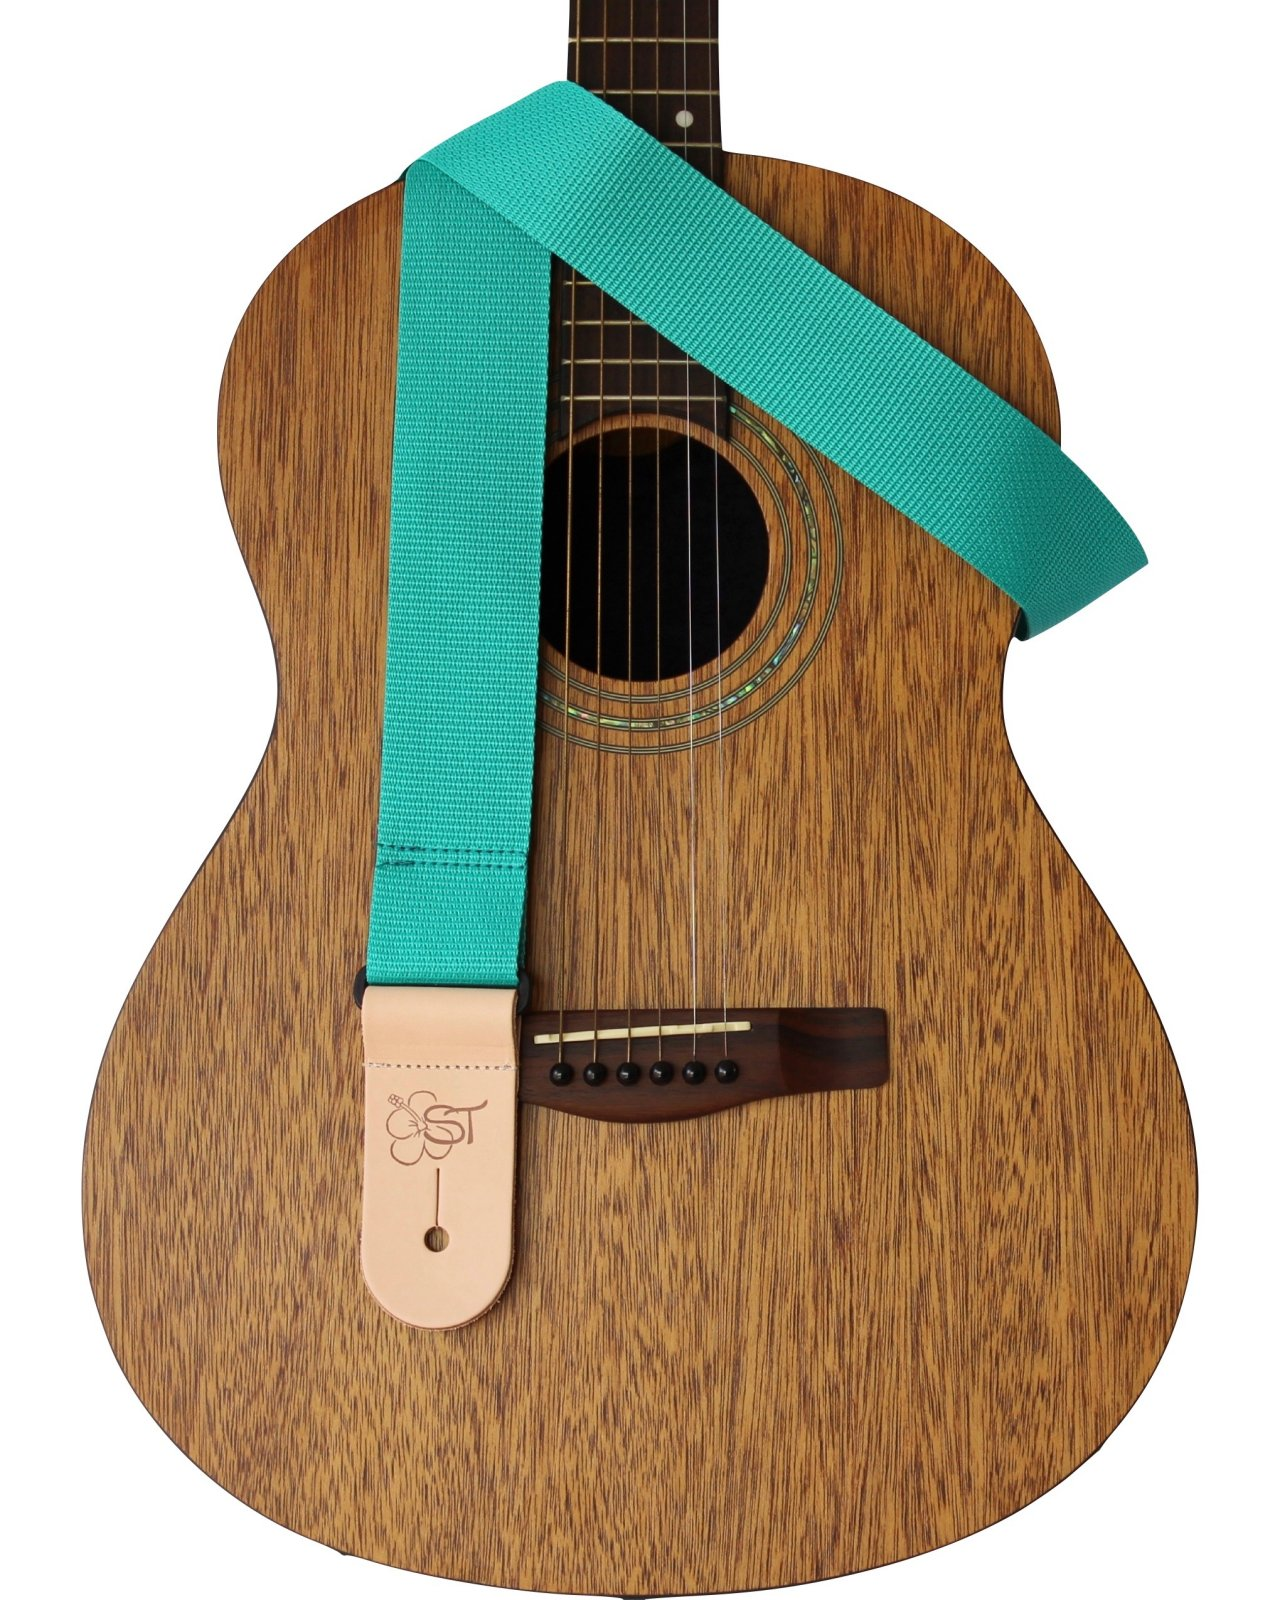 Sherrin's Threads 2 Guitar Strap w/Leather Ends - Teal - Made in USA